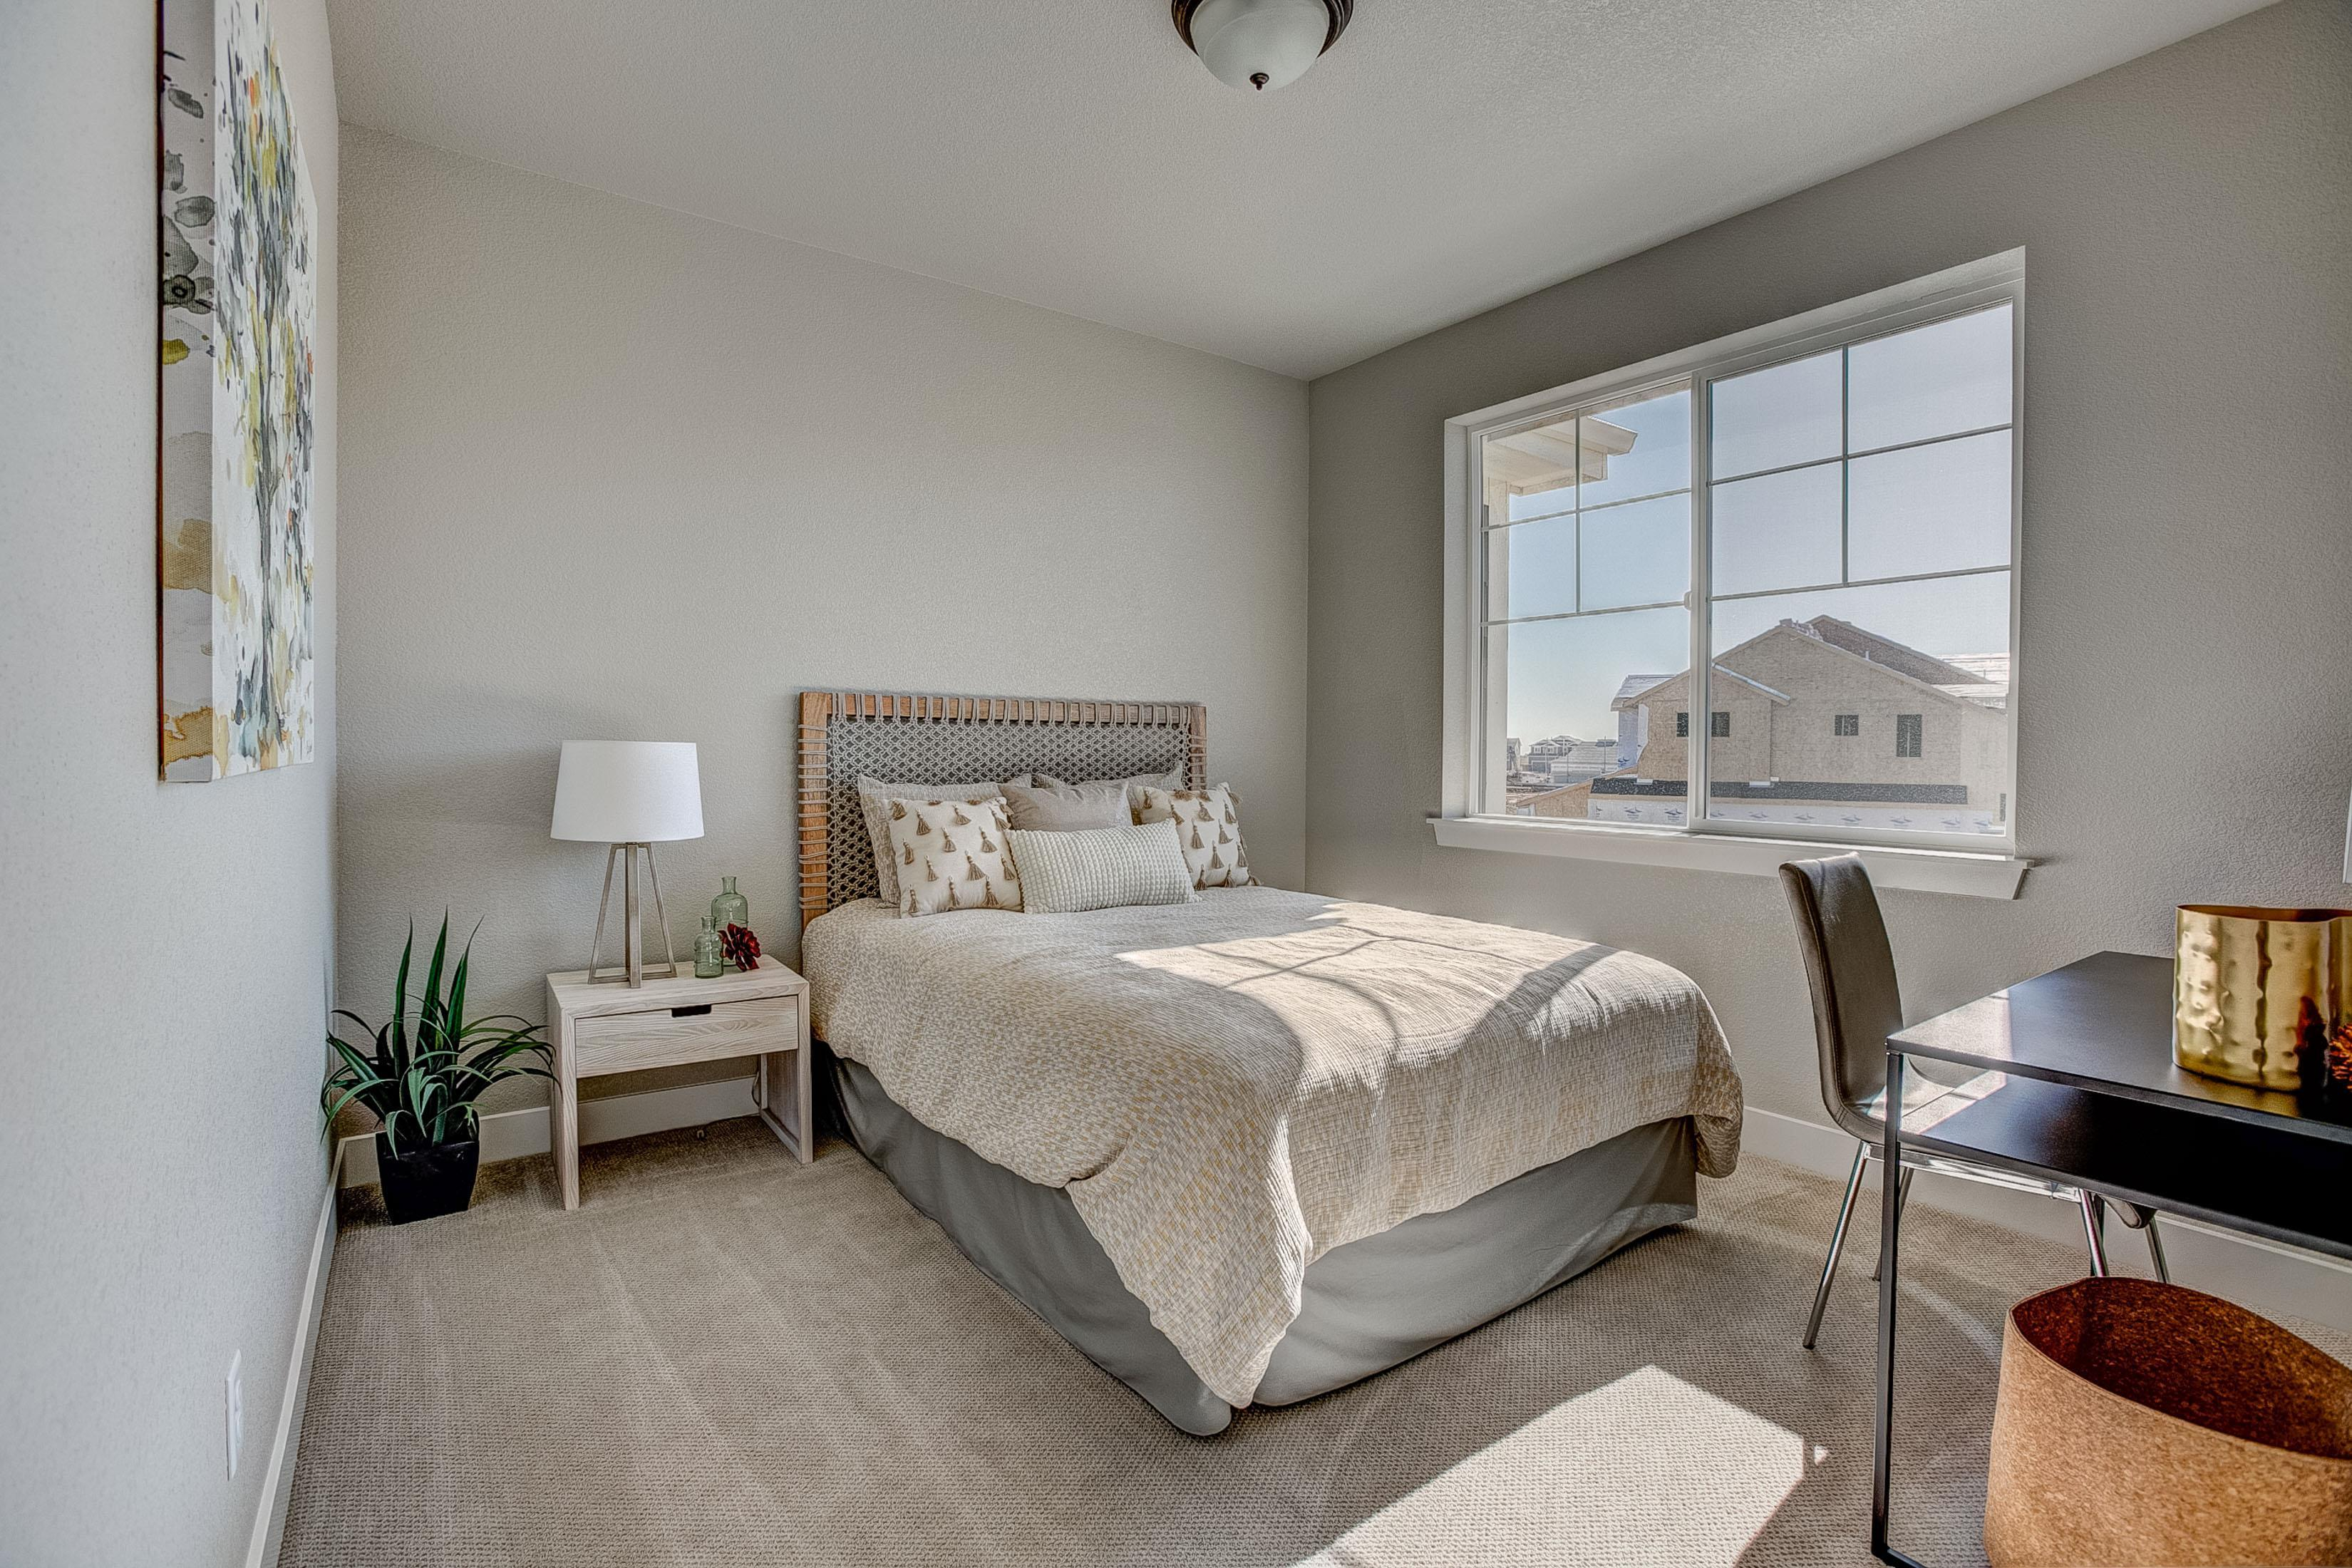 Bedroom featured in the Barrington  By Landmark Homes  in Fort Collins-Loveland, CO